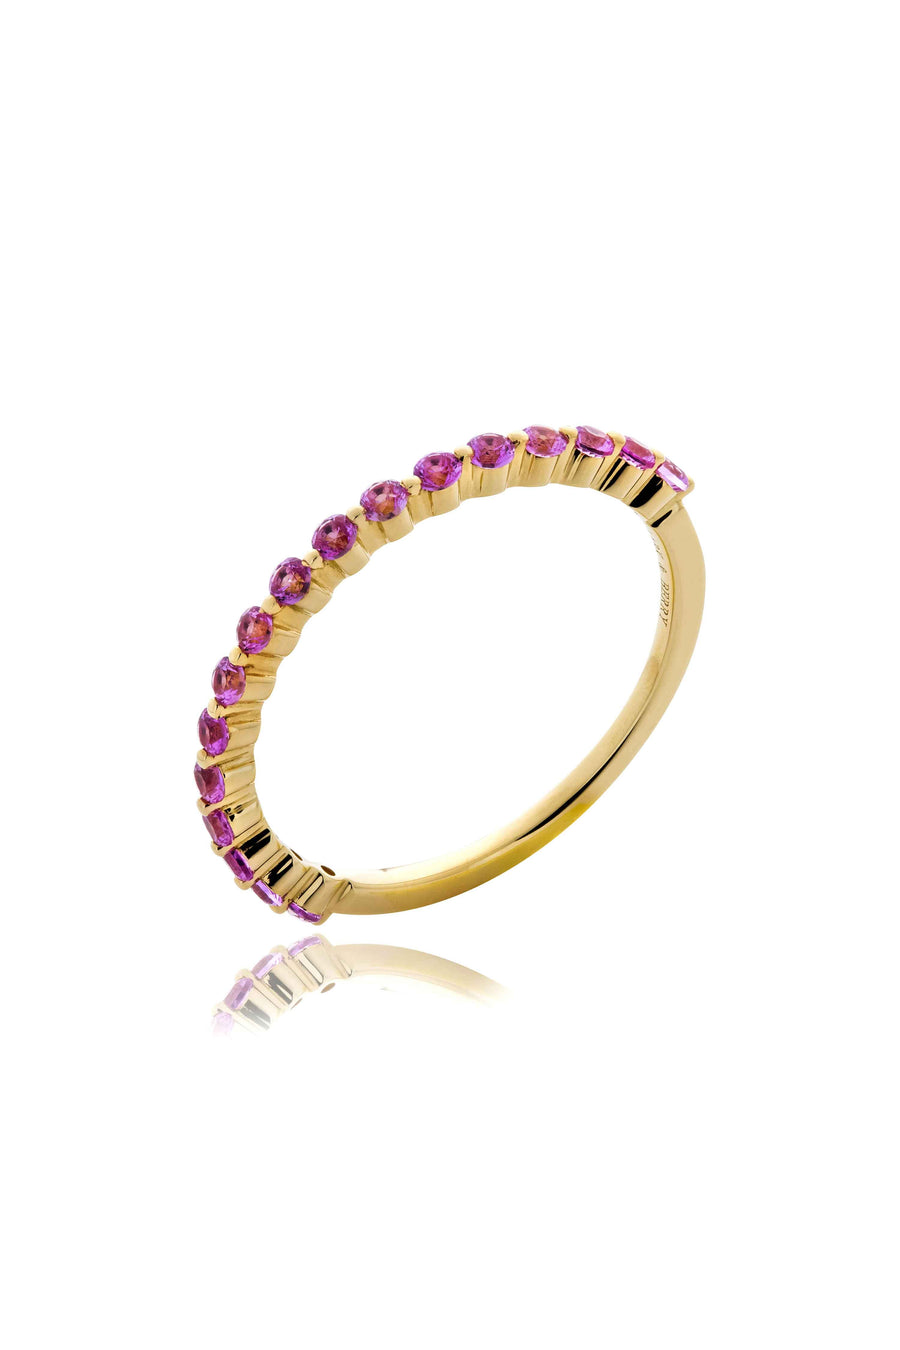 Modernist Stackable Pink Sapphire Ring in 14K Gold